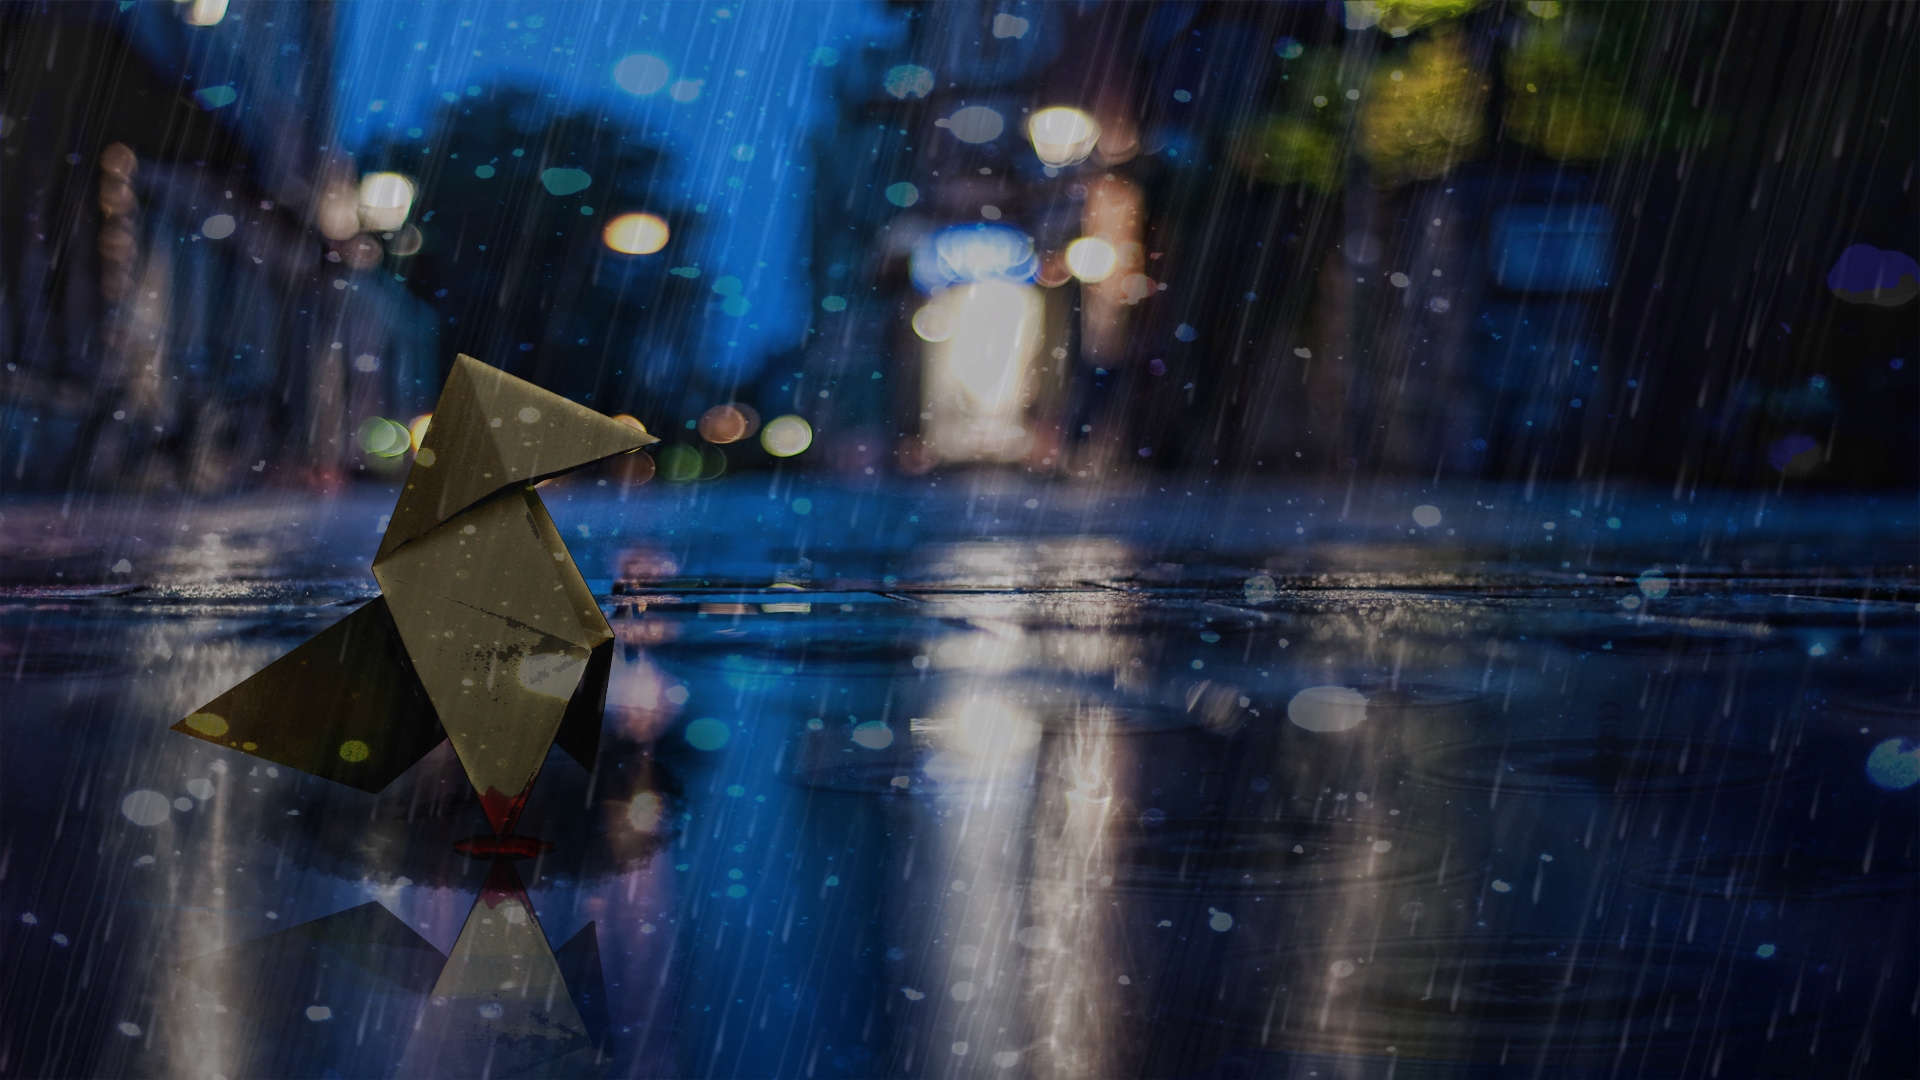 heavy_rain_wallpaper_by_artbysamgerman-d4vnmmh